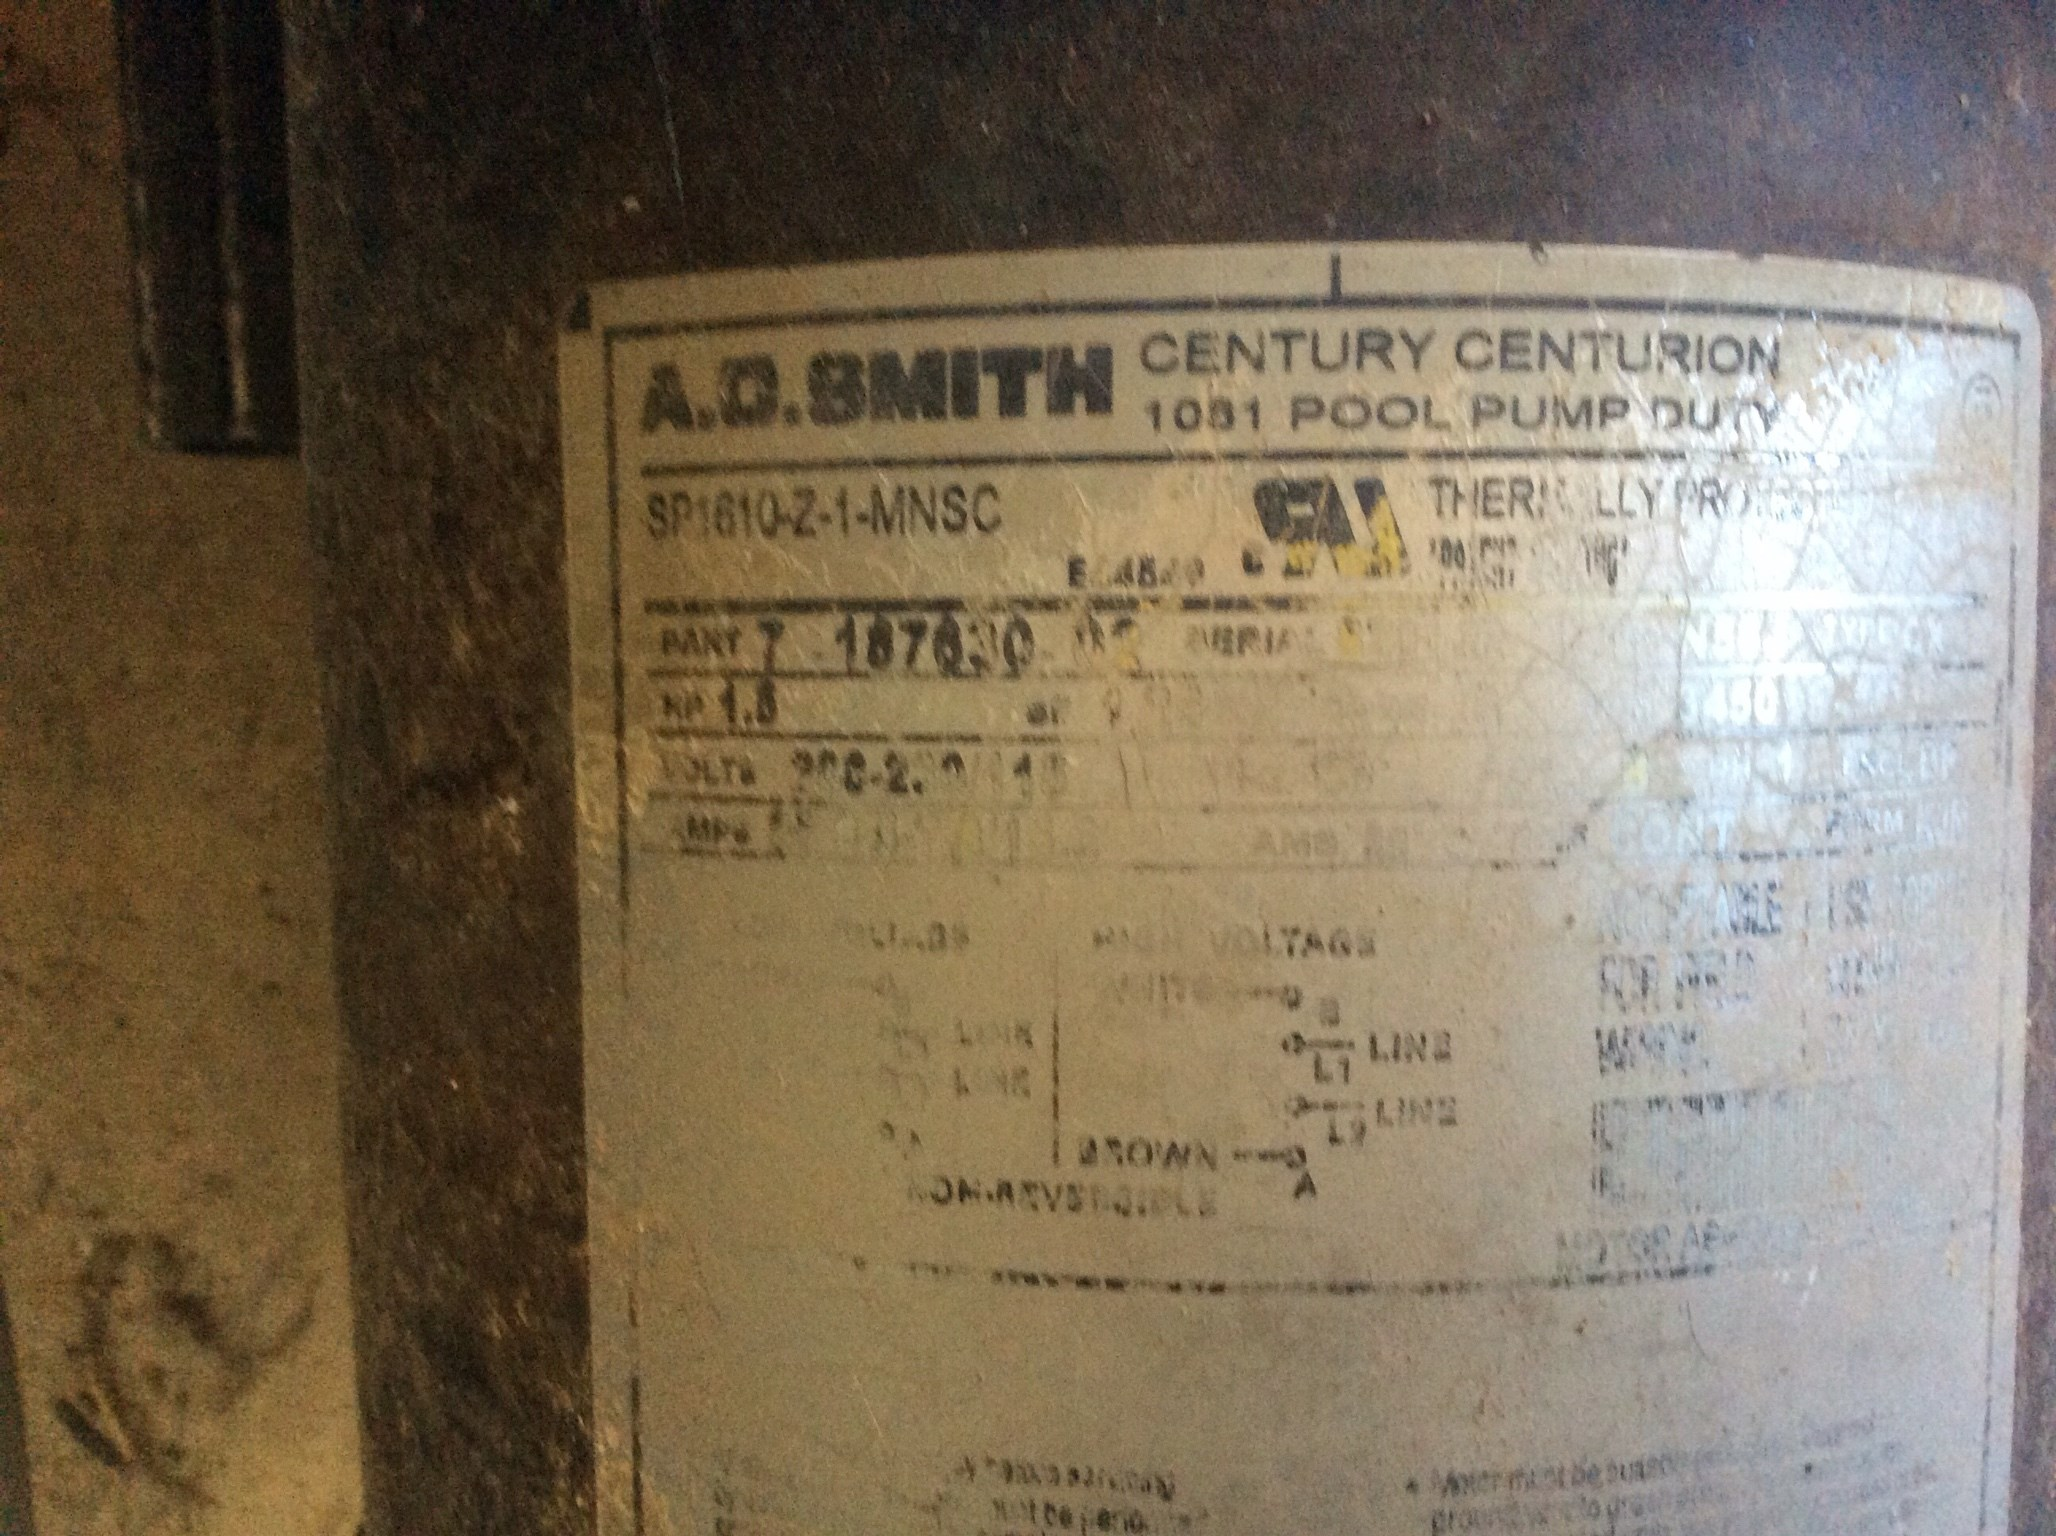 Century 1.5 HP Round Flange Up Rate Motor (C48L2N134) Formerly A.O. Smith - UST1152